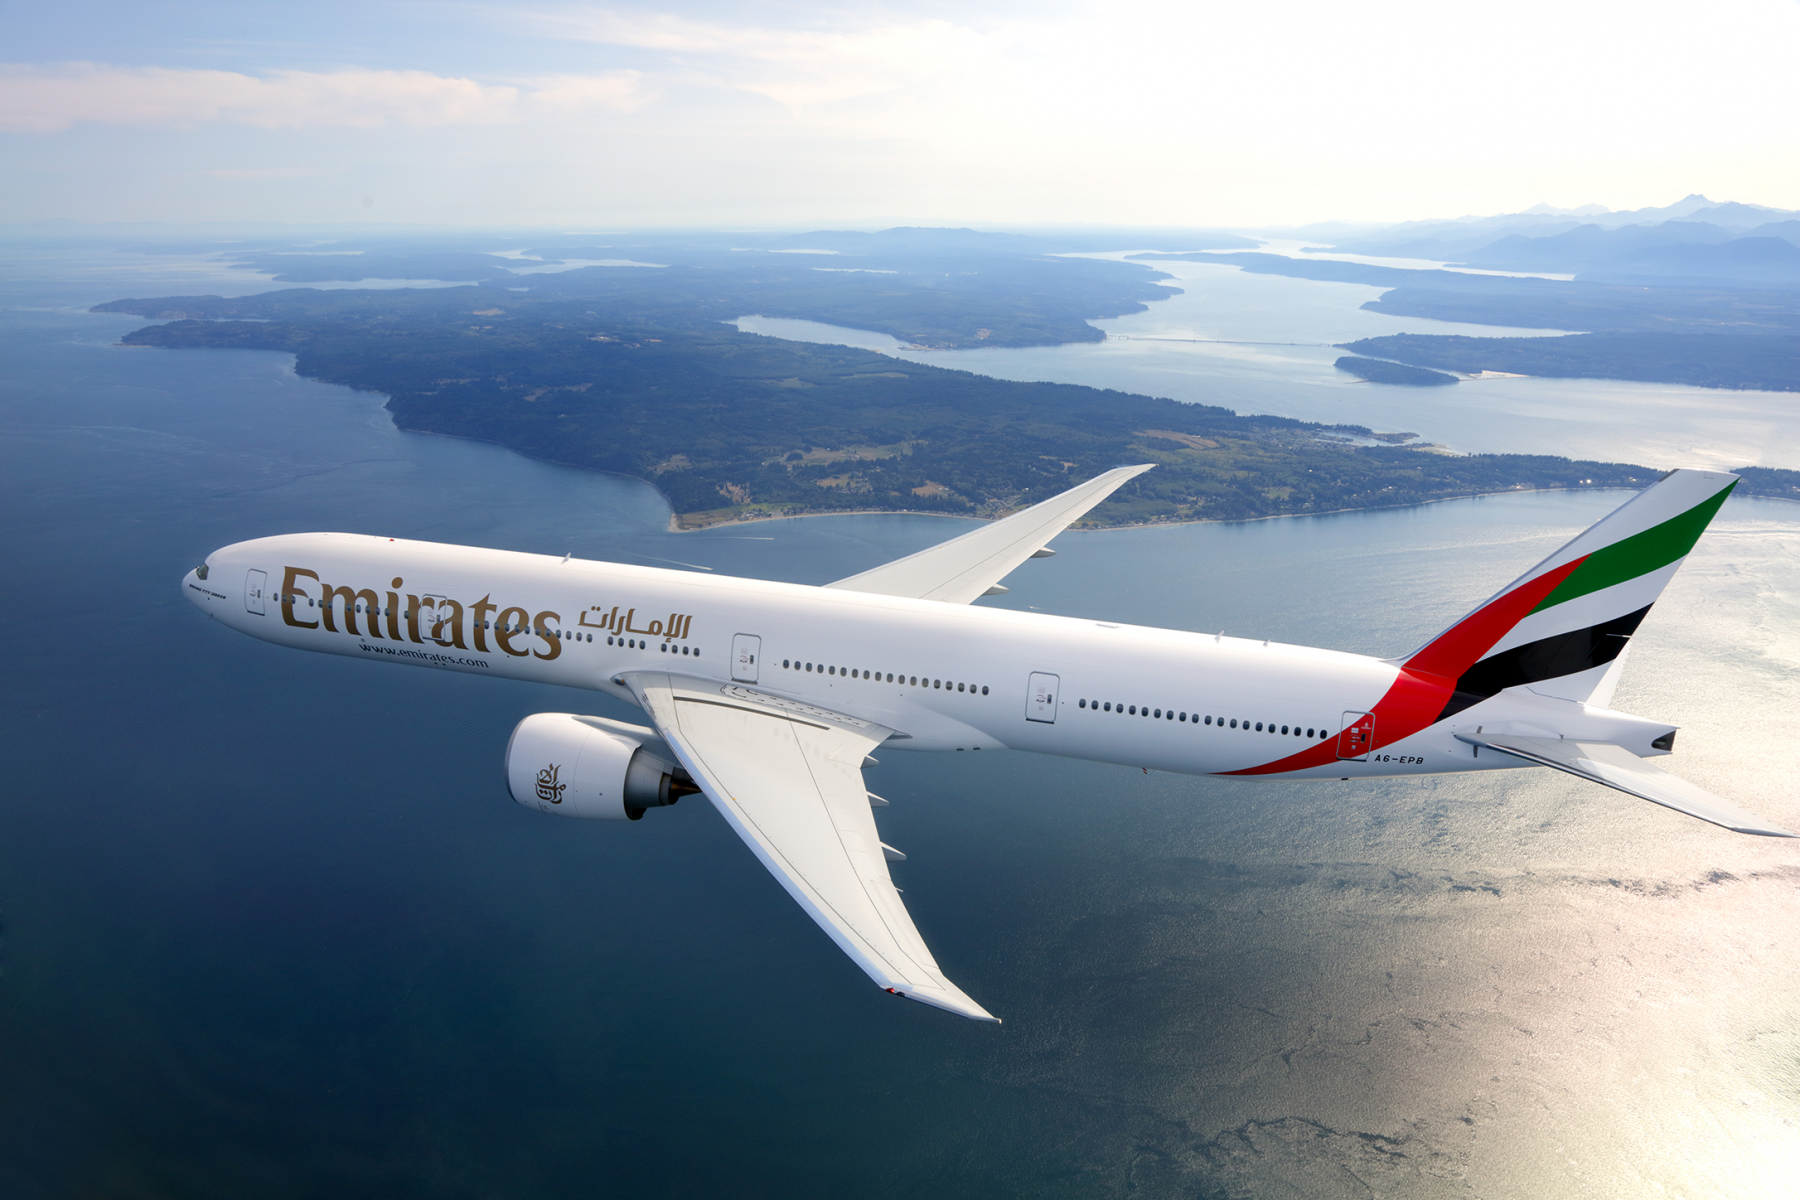 Emirates to operate limited passenger flights in May